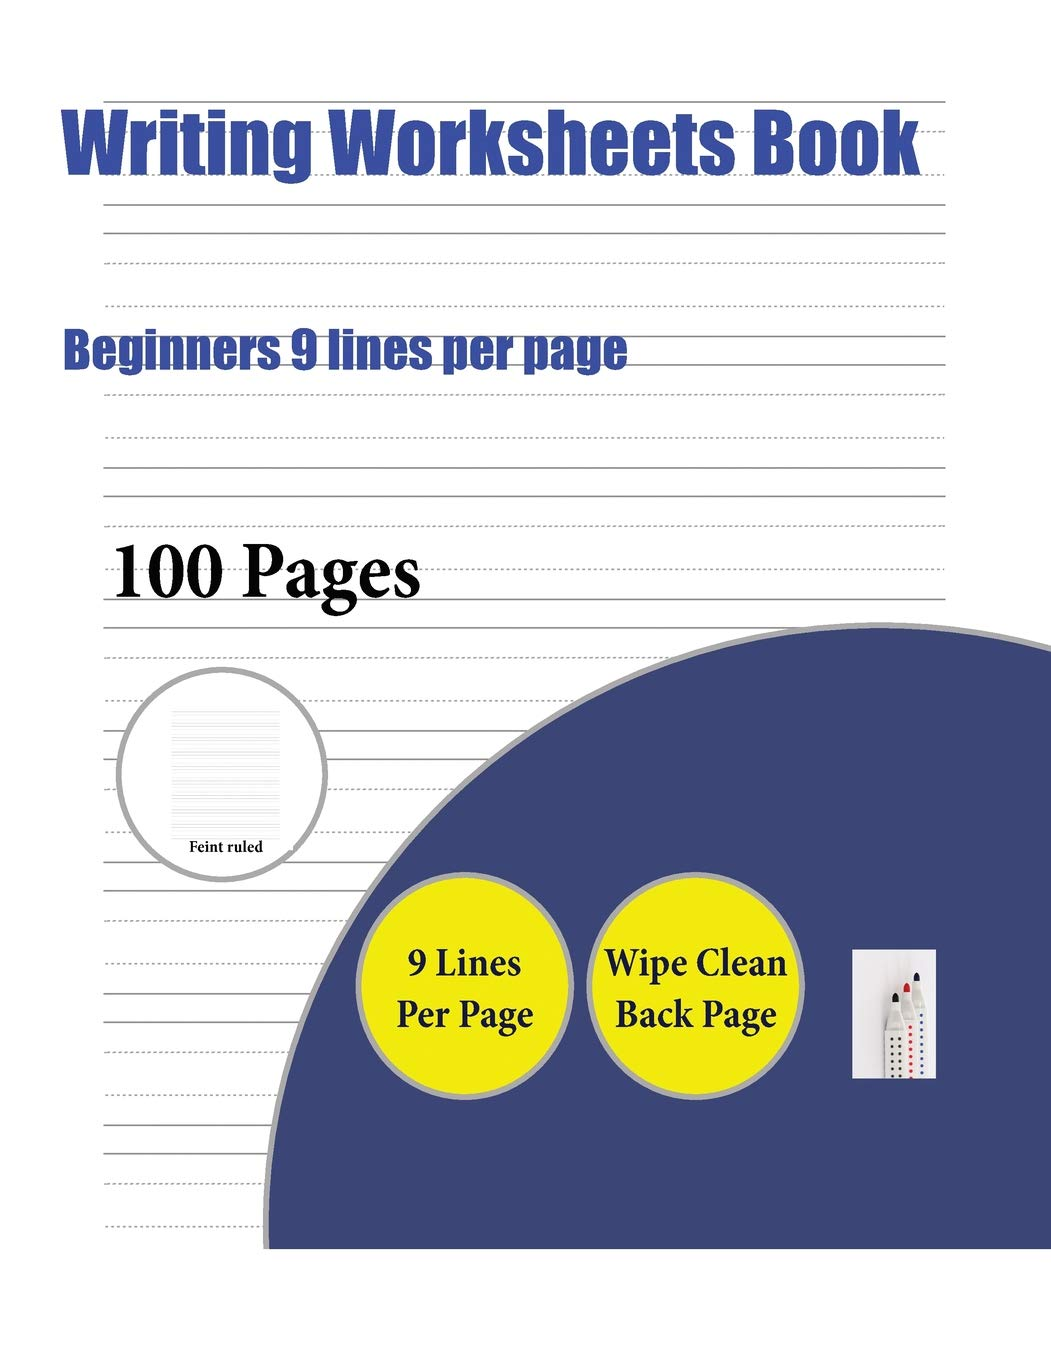 Writing Worksheets Book (beginners 9 Lines Per Page): A Handwriting